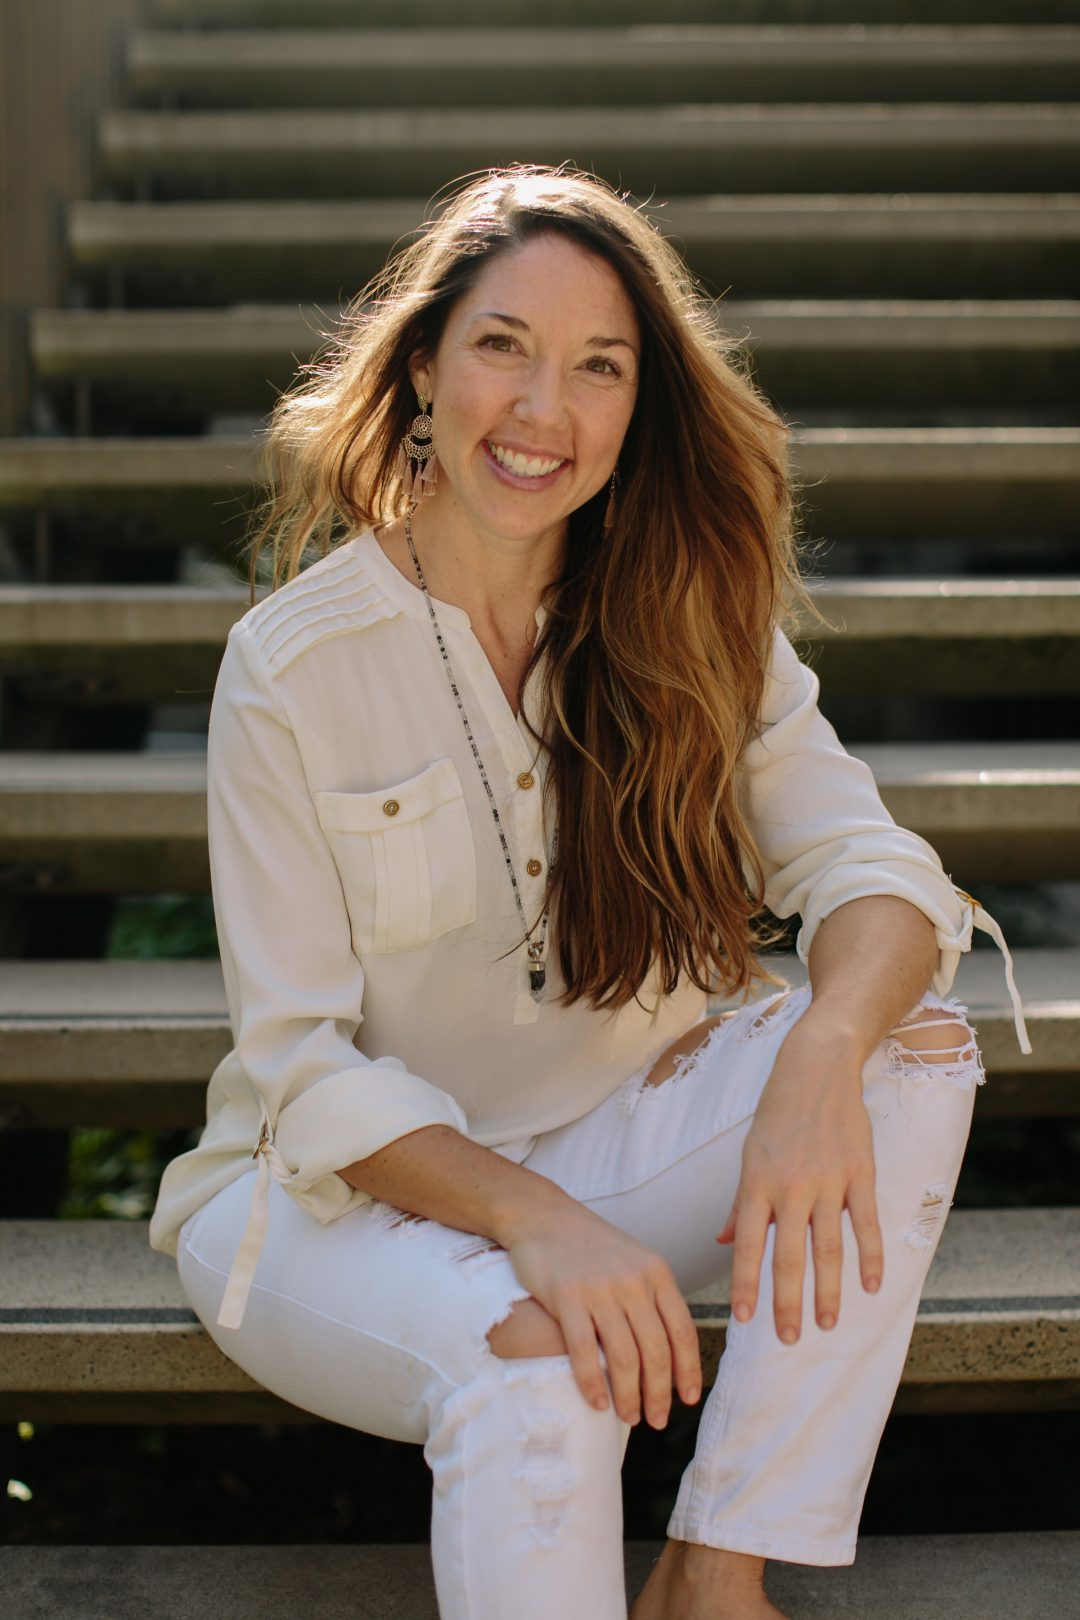 Kat Clayton yoga teacher and founder of Yoga Beyond Borders. Leads wellness yoga and meditation retreats and trainings globally.